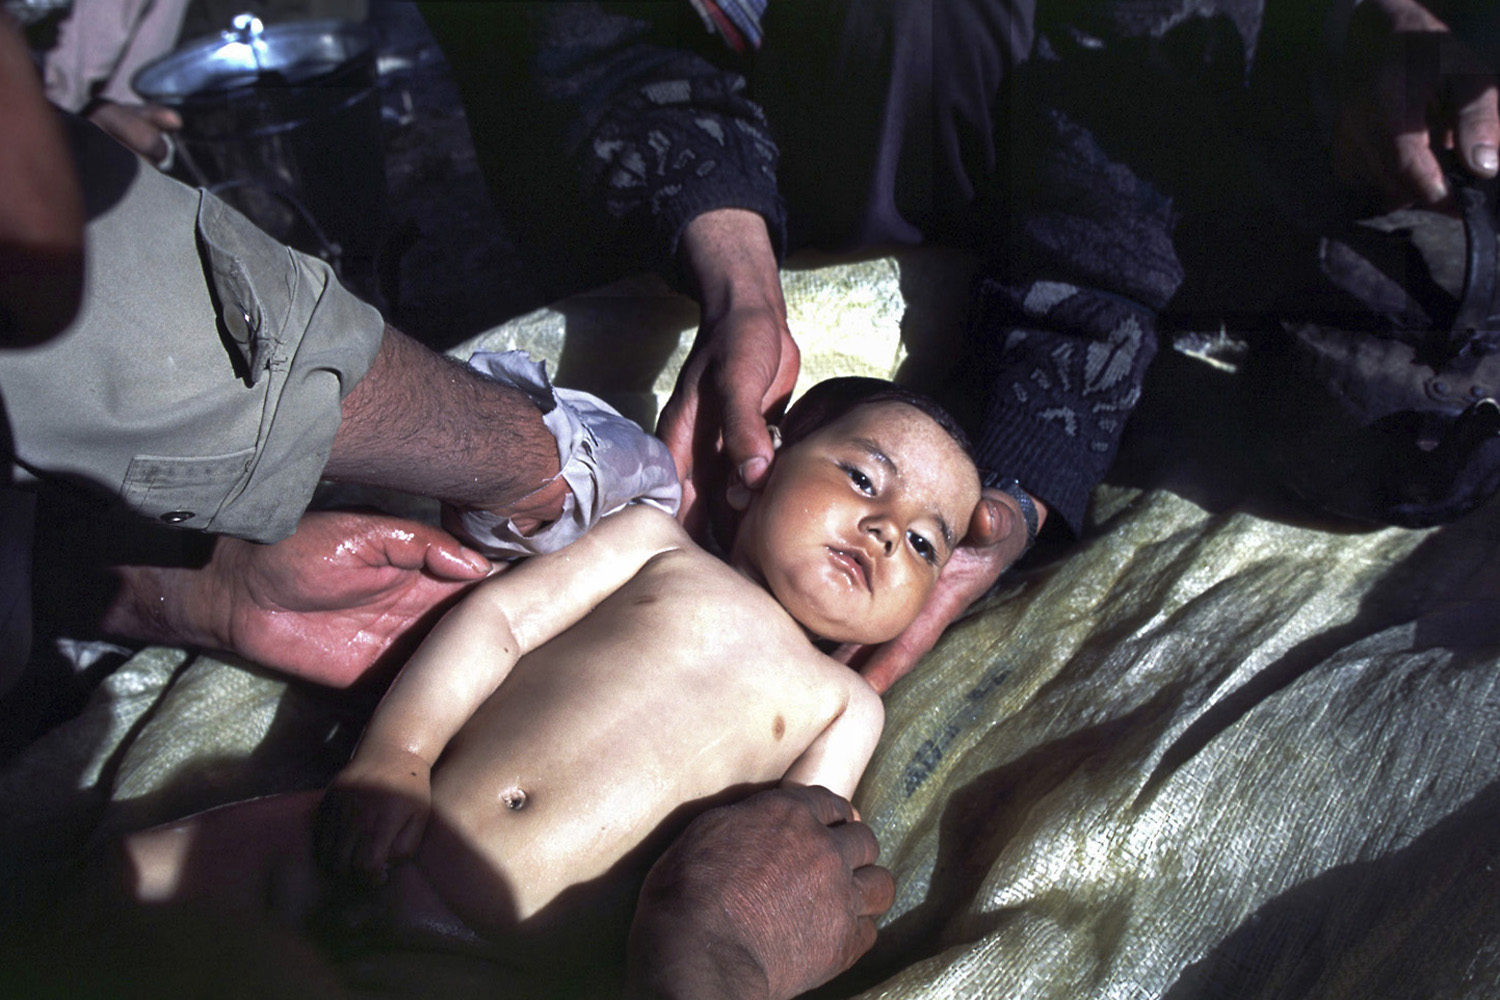 Men wash the body of a dead one-year-old, Abdullah, before a traditional Islamic burial. The baby died from exposure because the Taliban refused to allow UN aid and supplies to be delivered to internally displaced refugees. February, 2001